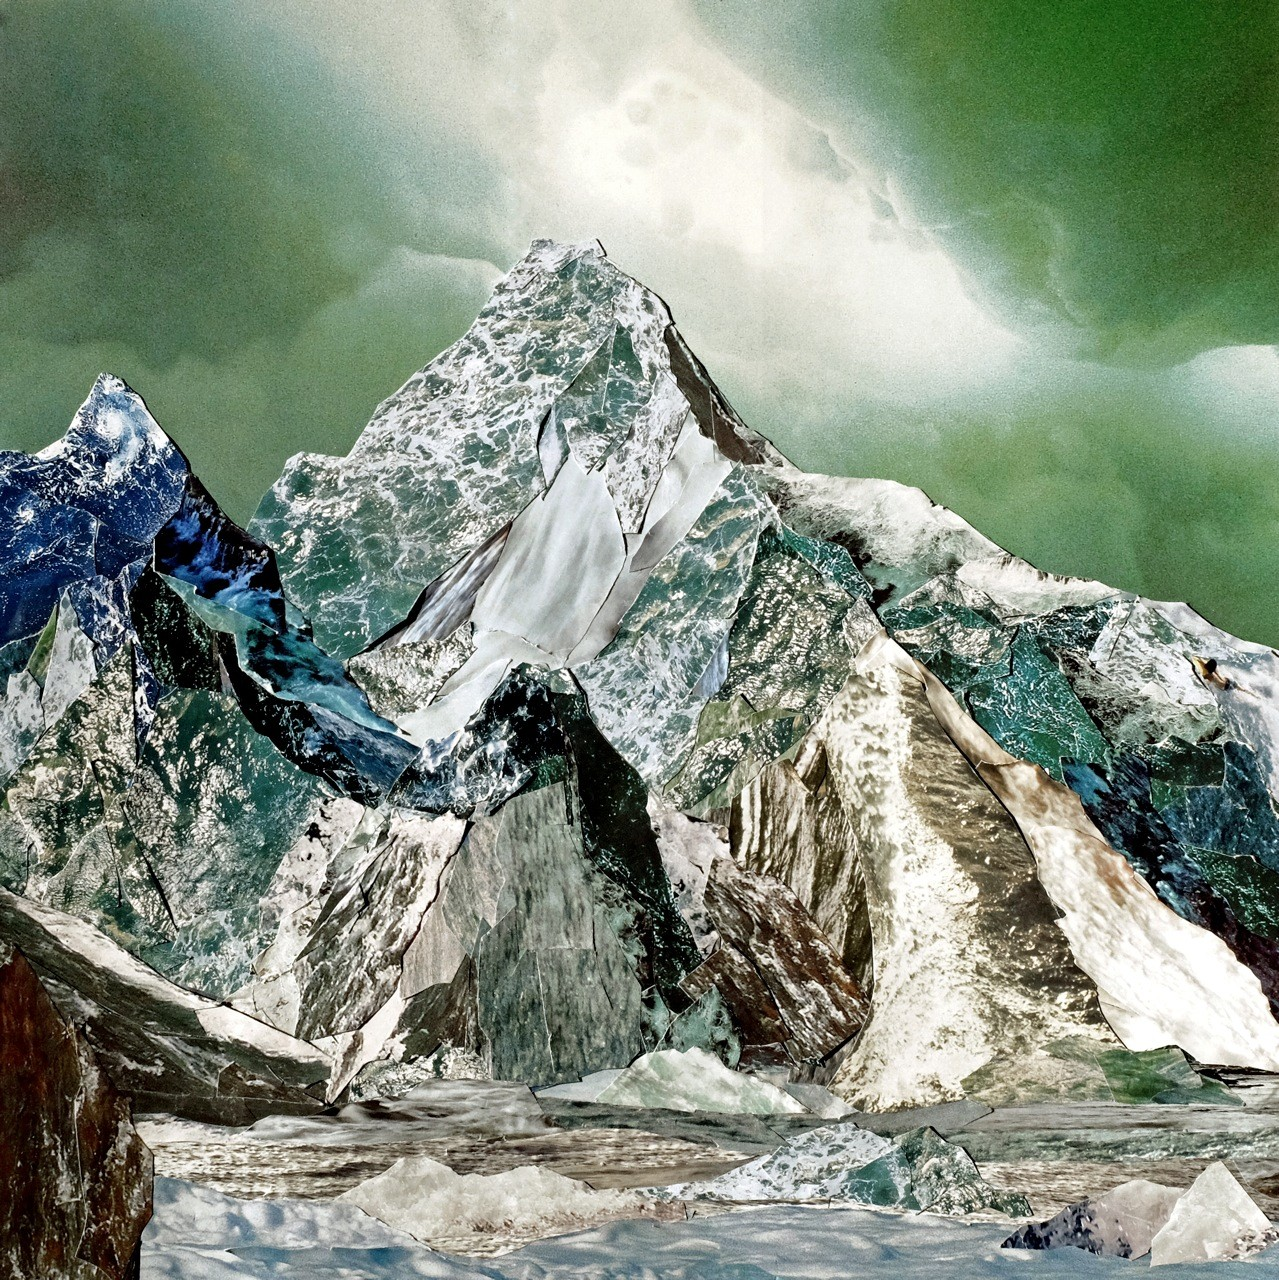 Mountain of water #3 K2 – Handcut Paper Collage-Fotografie (120cm x 120cm) © Edel Seebauer